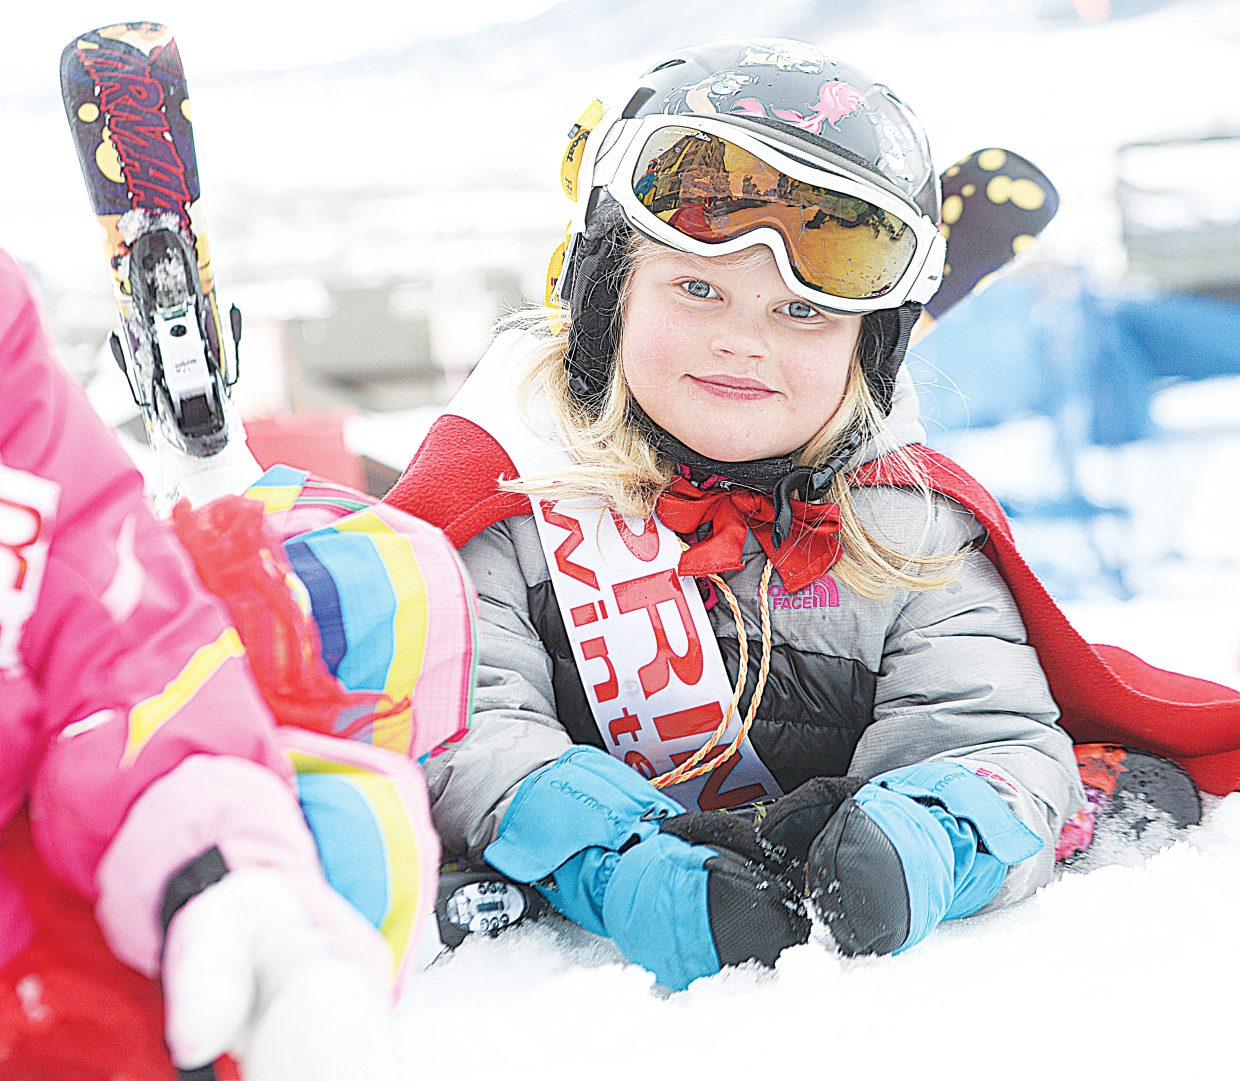 Simone Bastone-Russell got comfortable while waiting for her turn in Friday morning's Christy Sports Soda Pop Slalom Friday morning at Steamboat Ski Area.